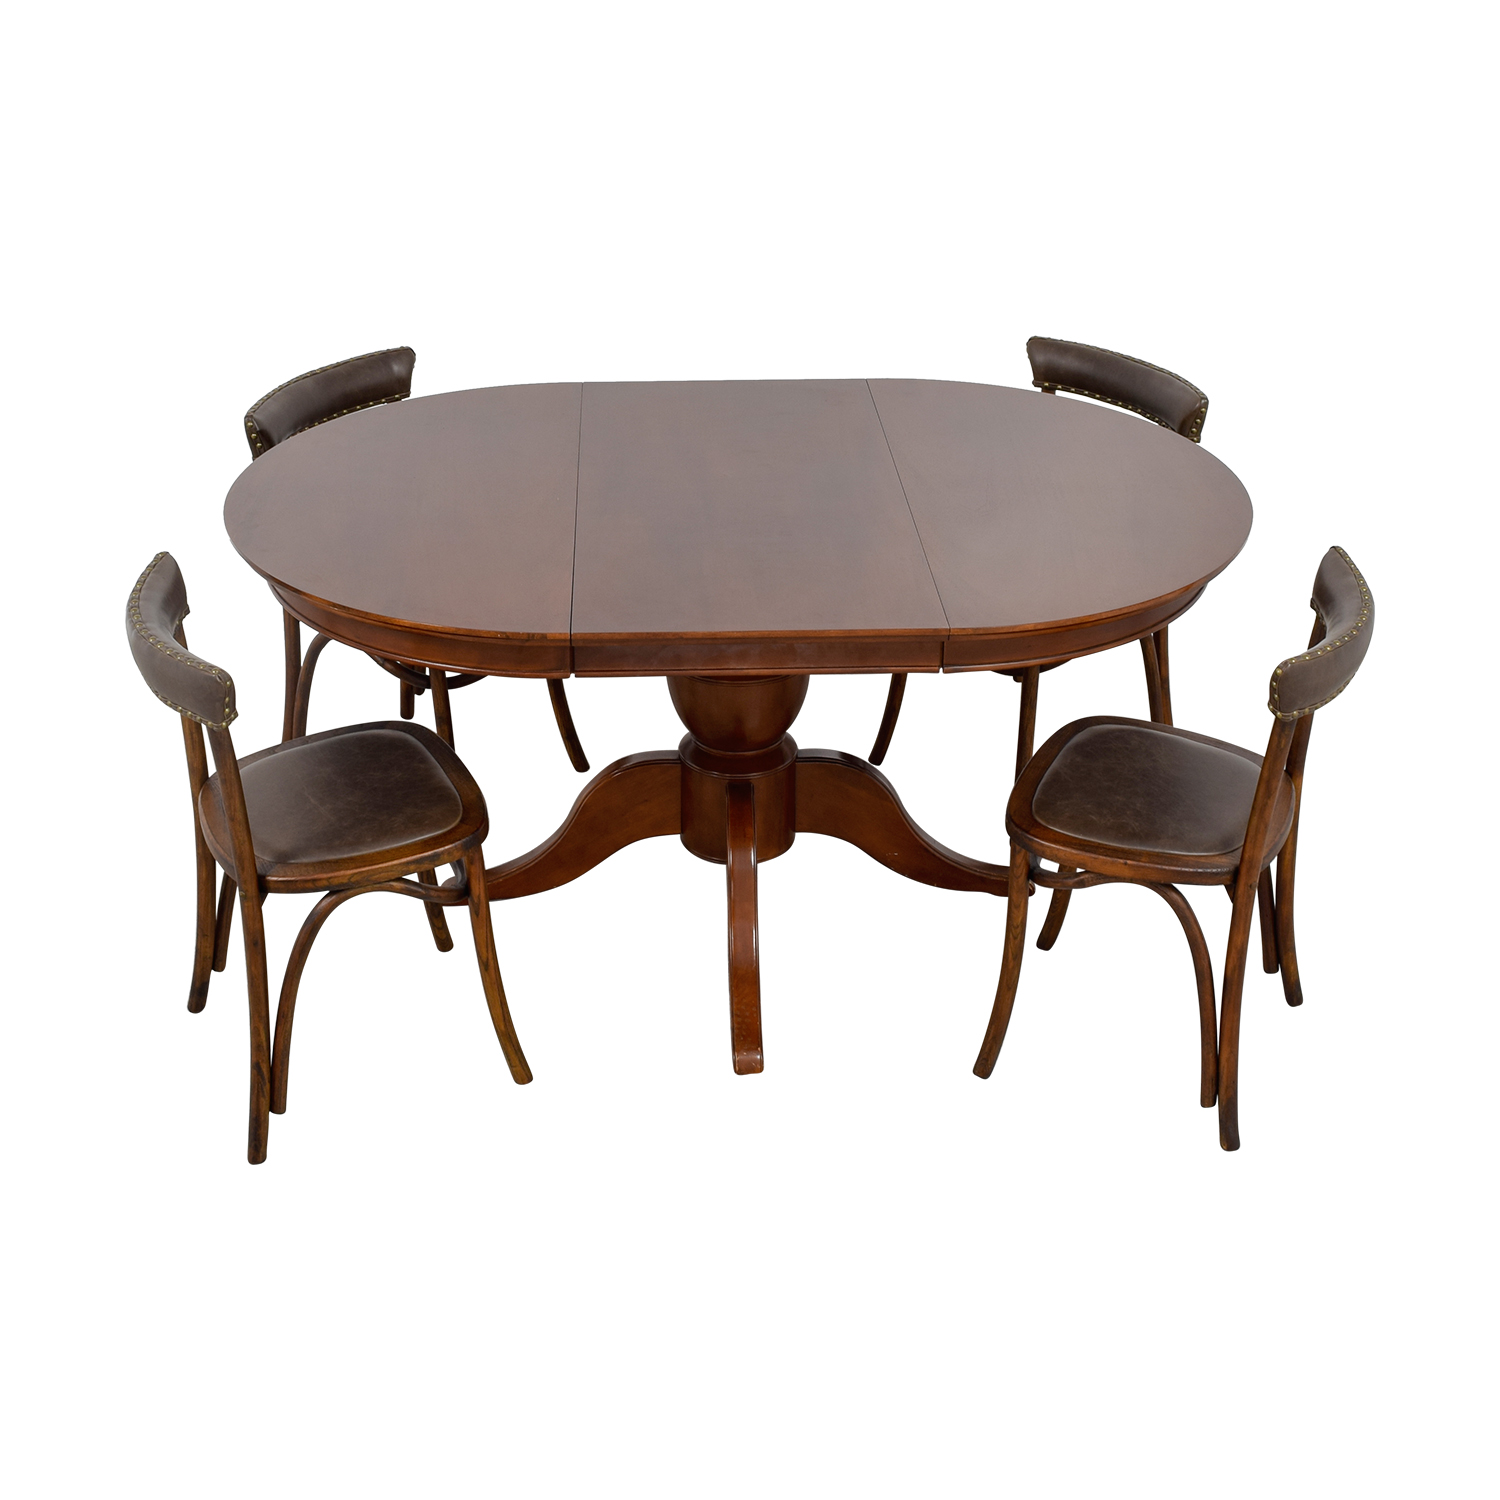 Pottery Barn Pottery Barn Round Spindle Table with Extension Leaf Dining Set discount